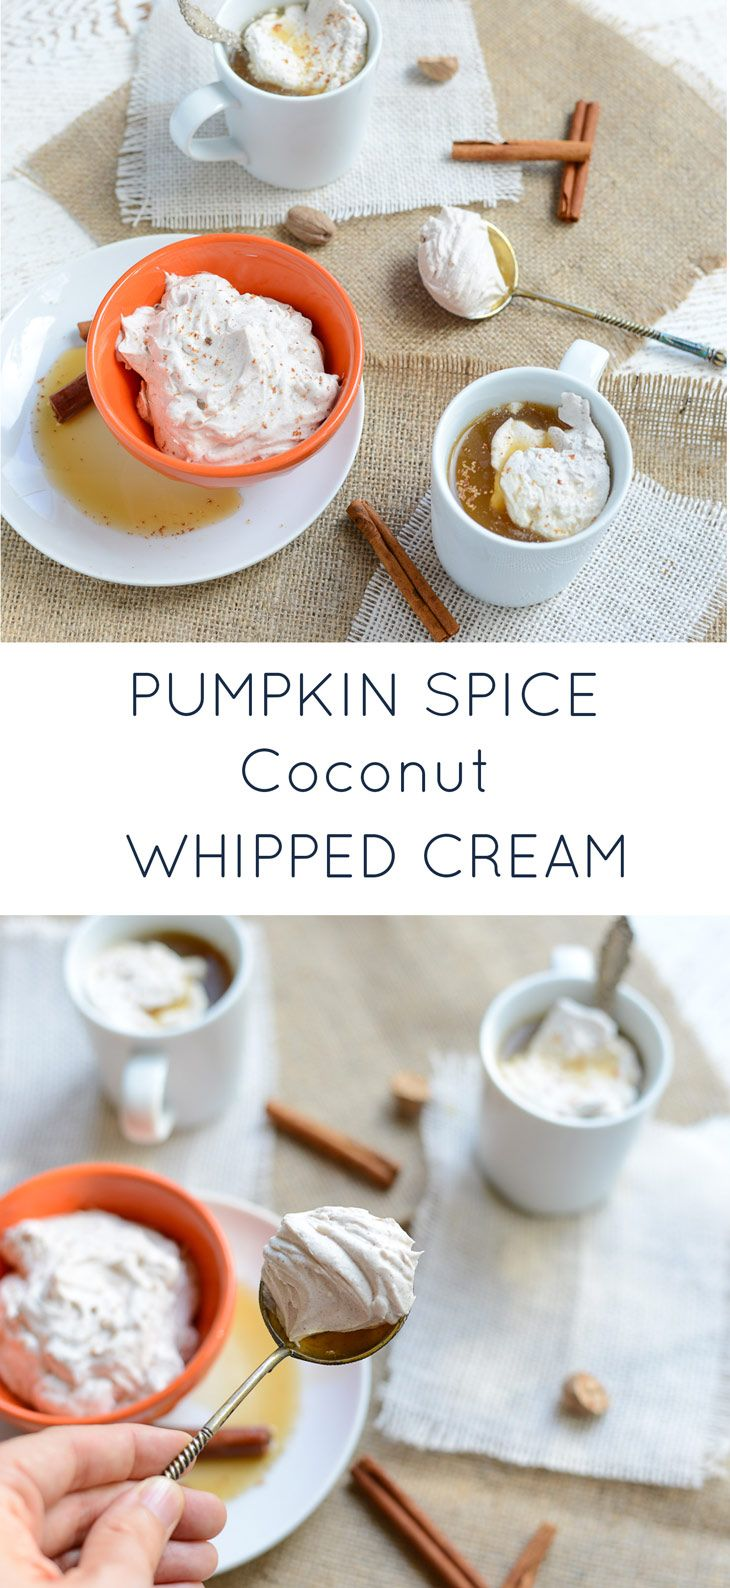 This Pumpkin Spice Coconut Whipped Cream is easy to make at home and is out-of-this-world delicious. It's also naturally dairy-free, refined sugar-free and perfect stirred into coffee, hot coco, warm apple cider, on top of pancakes, or on it's own directly out of the bowl! realfoodwholelife.com